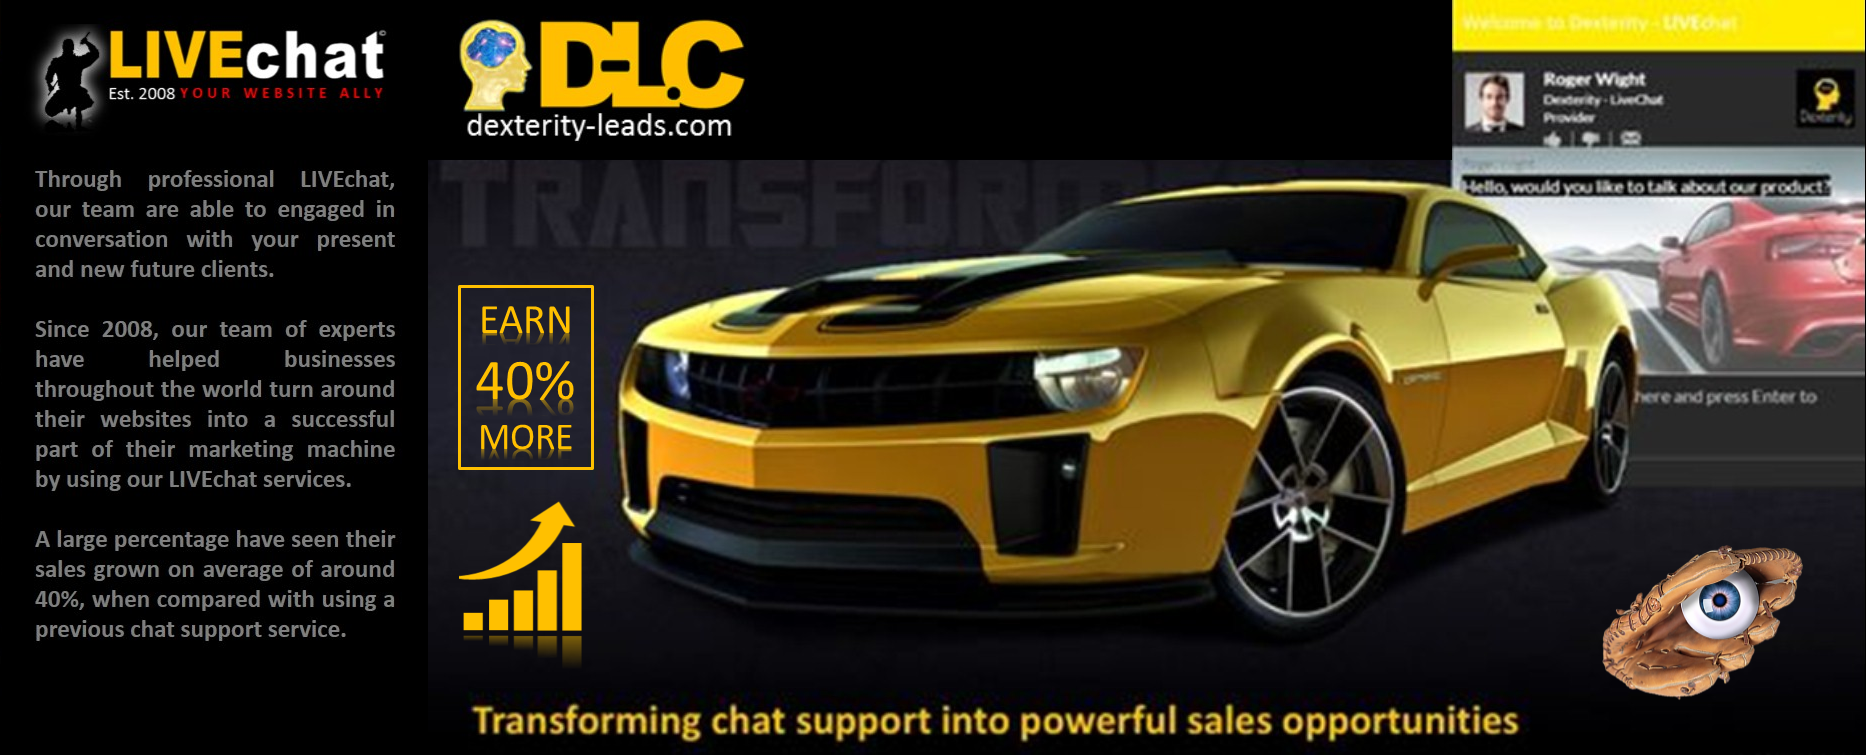 Dlc livechat support will eye catch and transform more